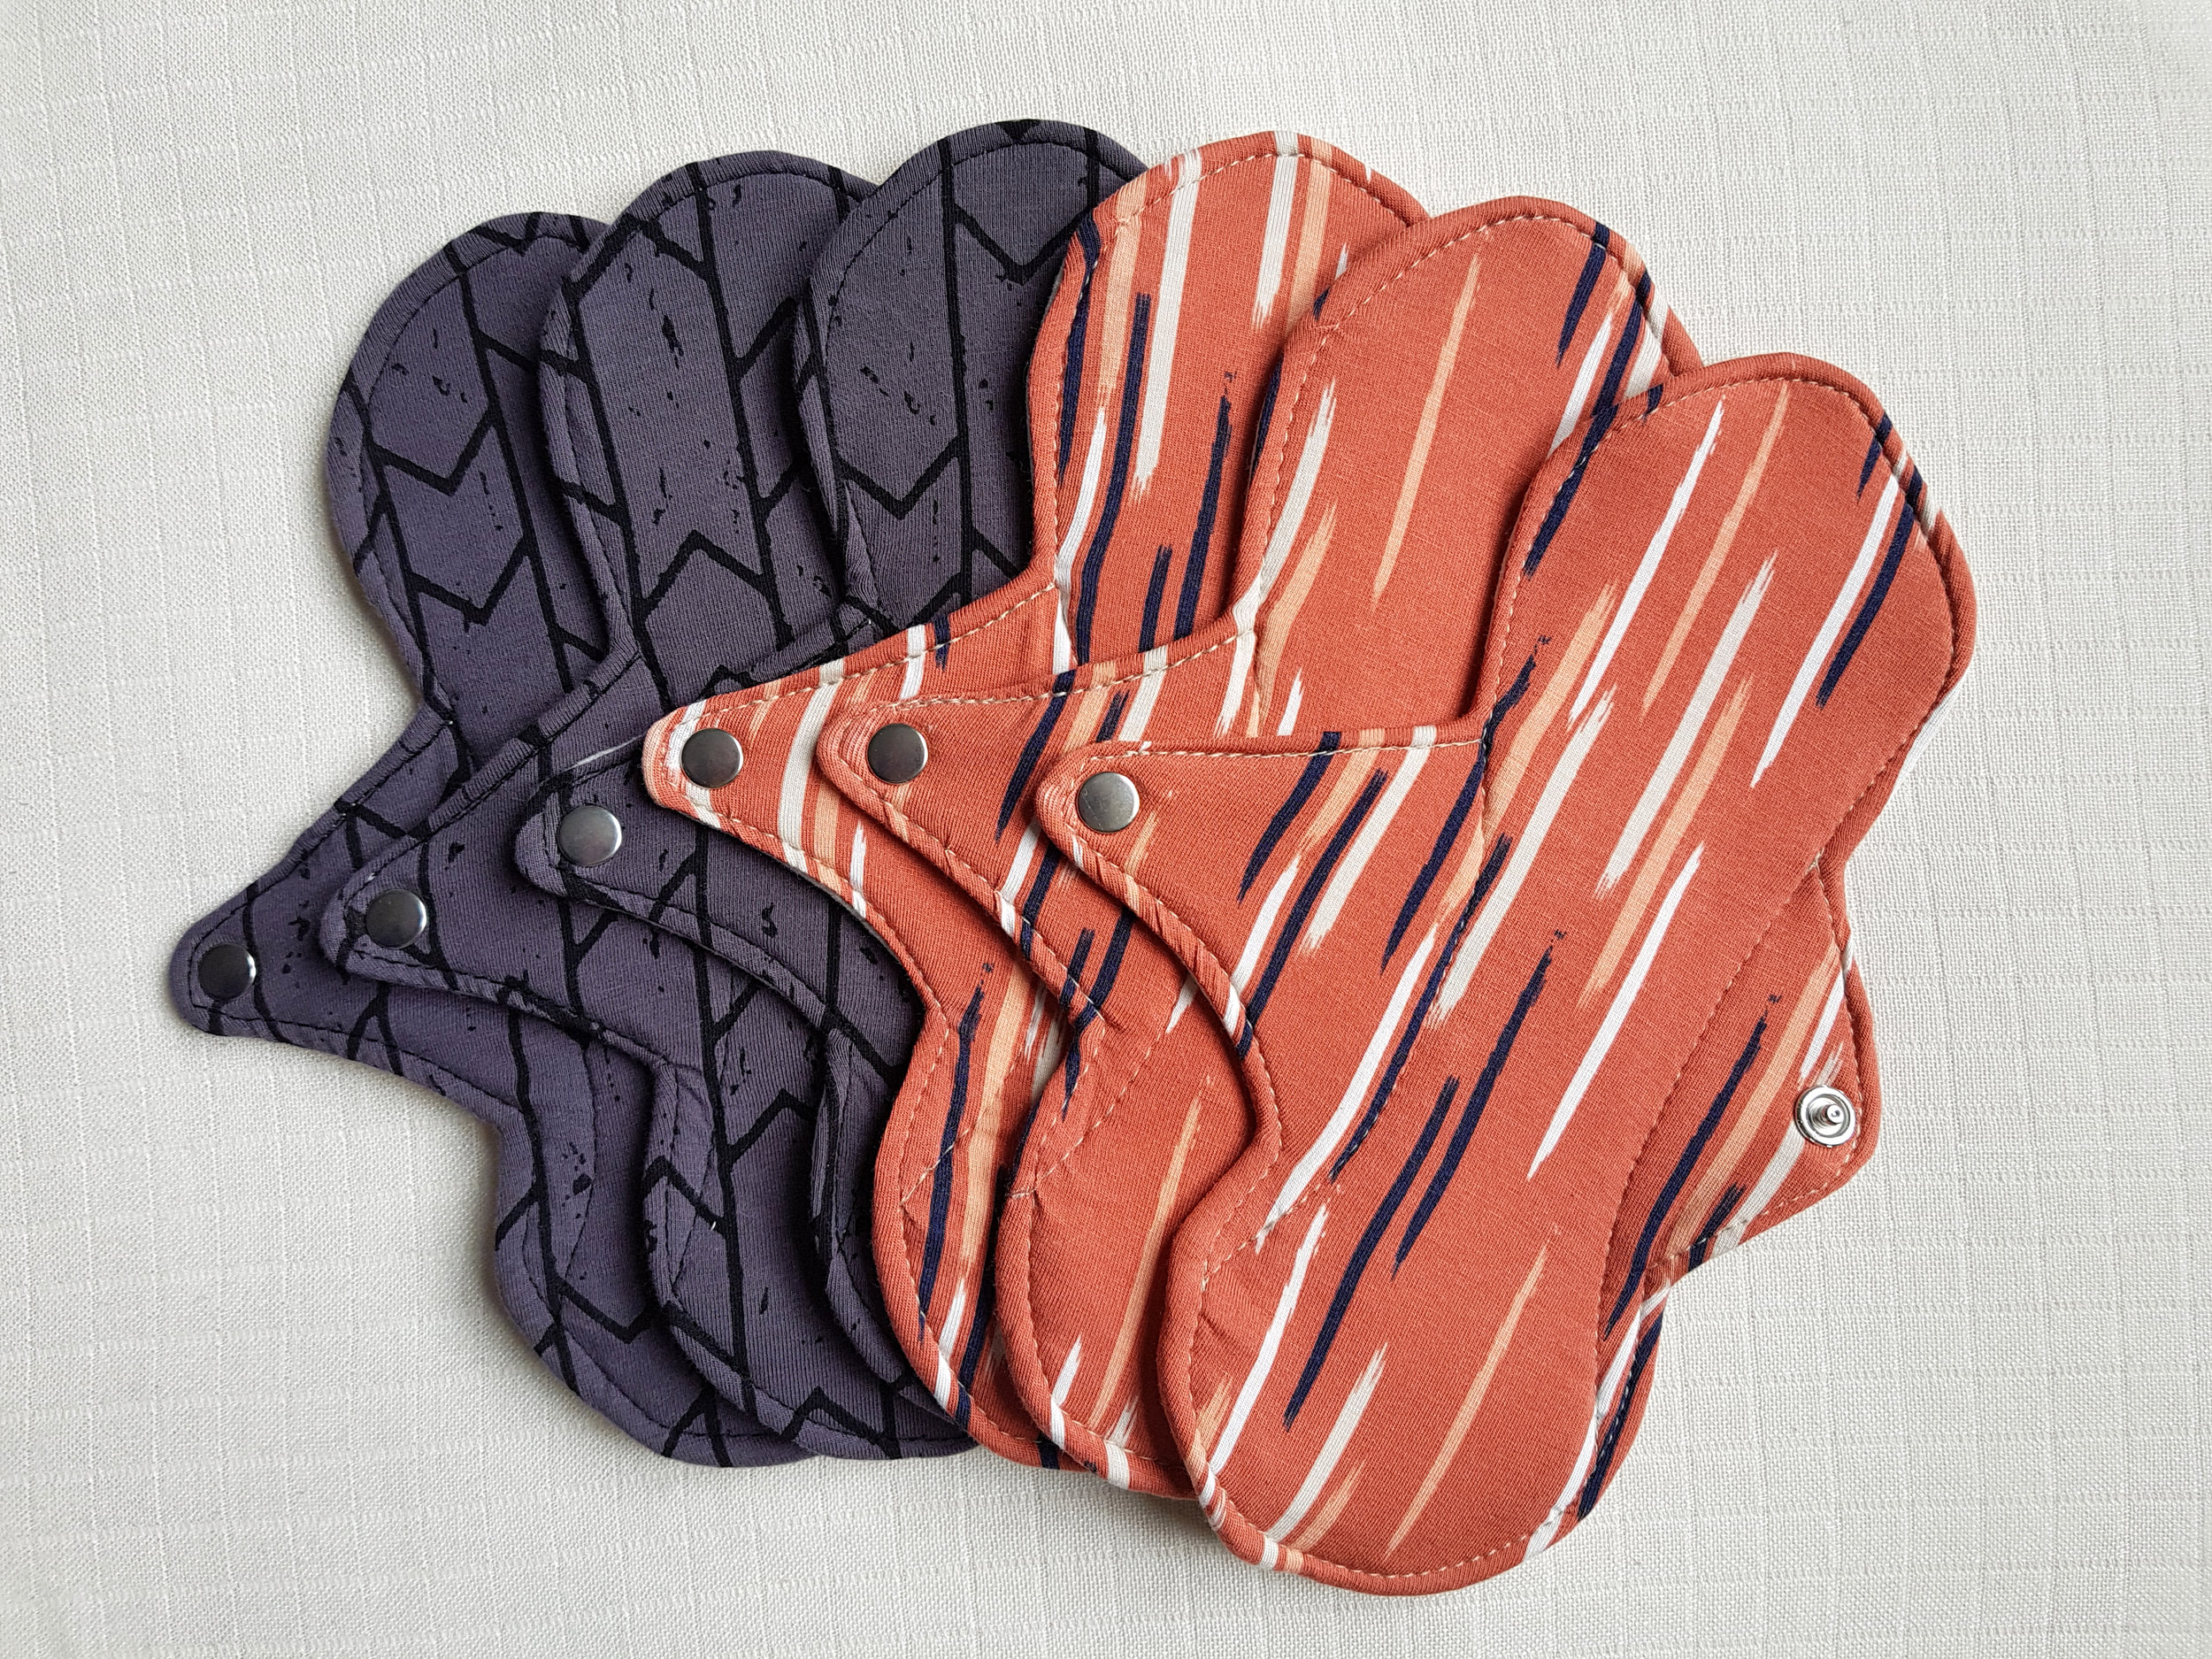 Sustainable, reusable cloth pads.Healthy for you and the earth. - We only use the highest quality fabrics, produced using no chemicals and pesticides, and low impact with water usage and energy. Click here to find out more about why we do things right.